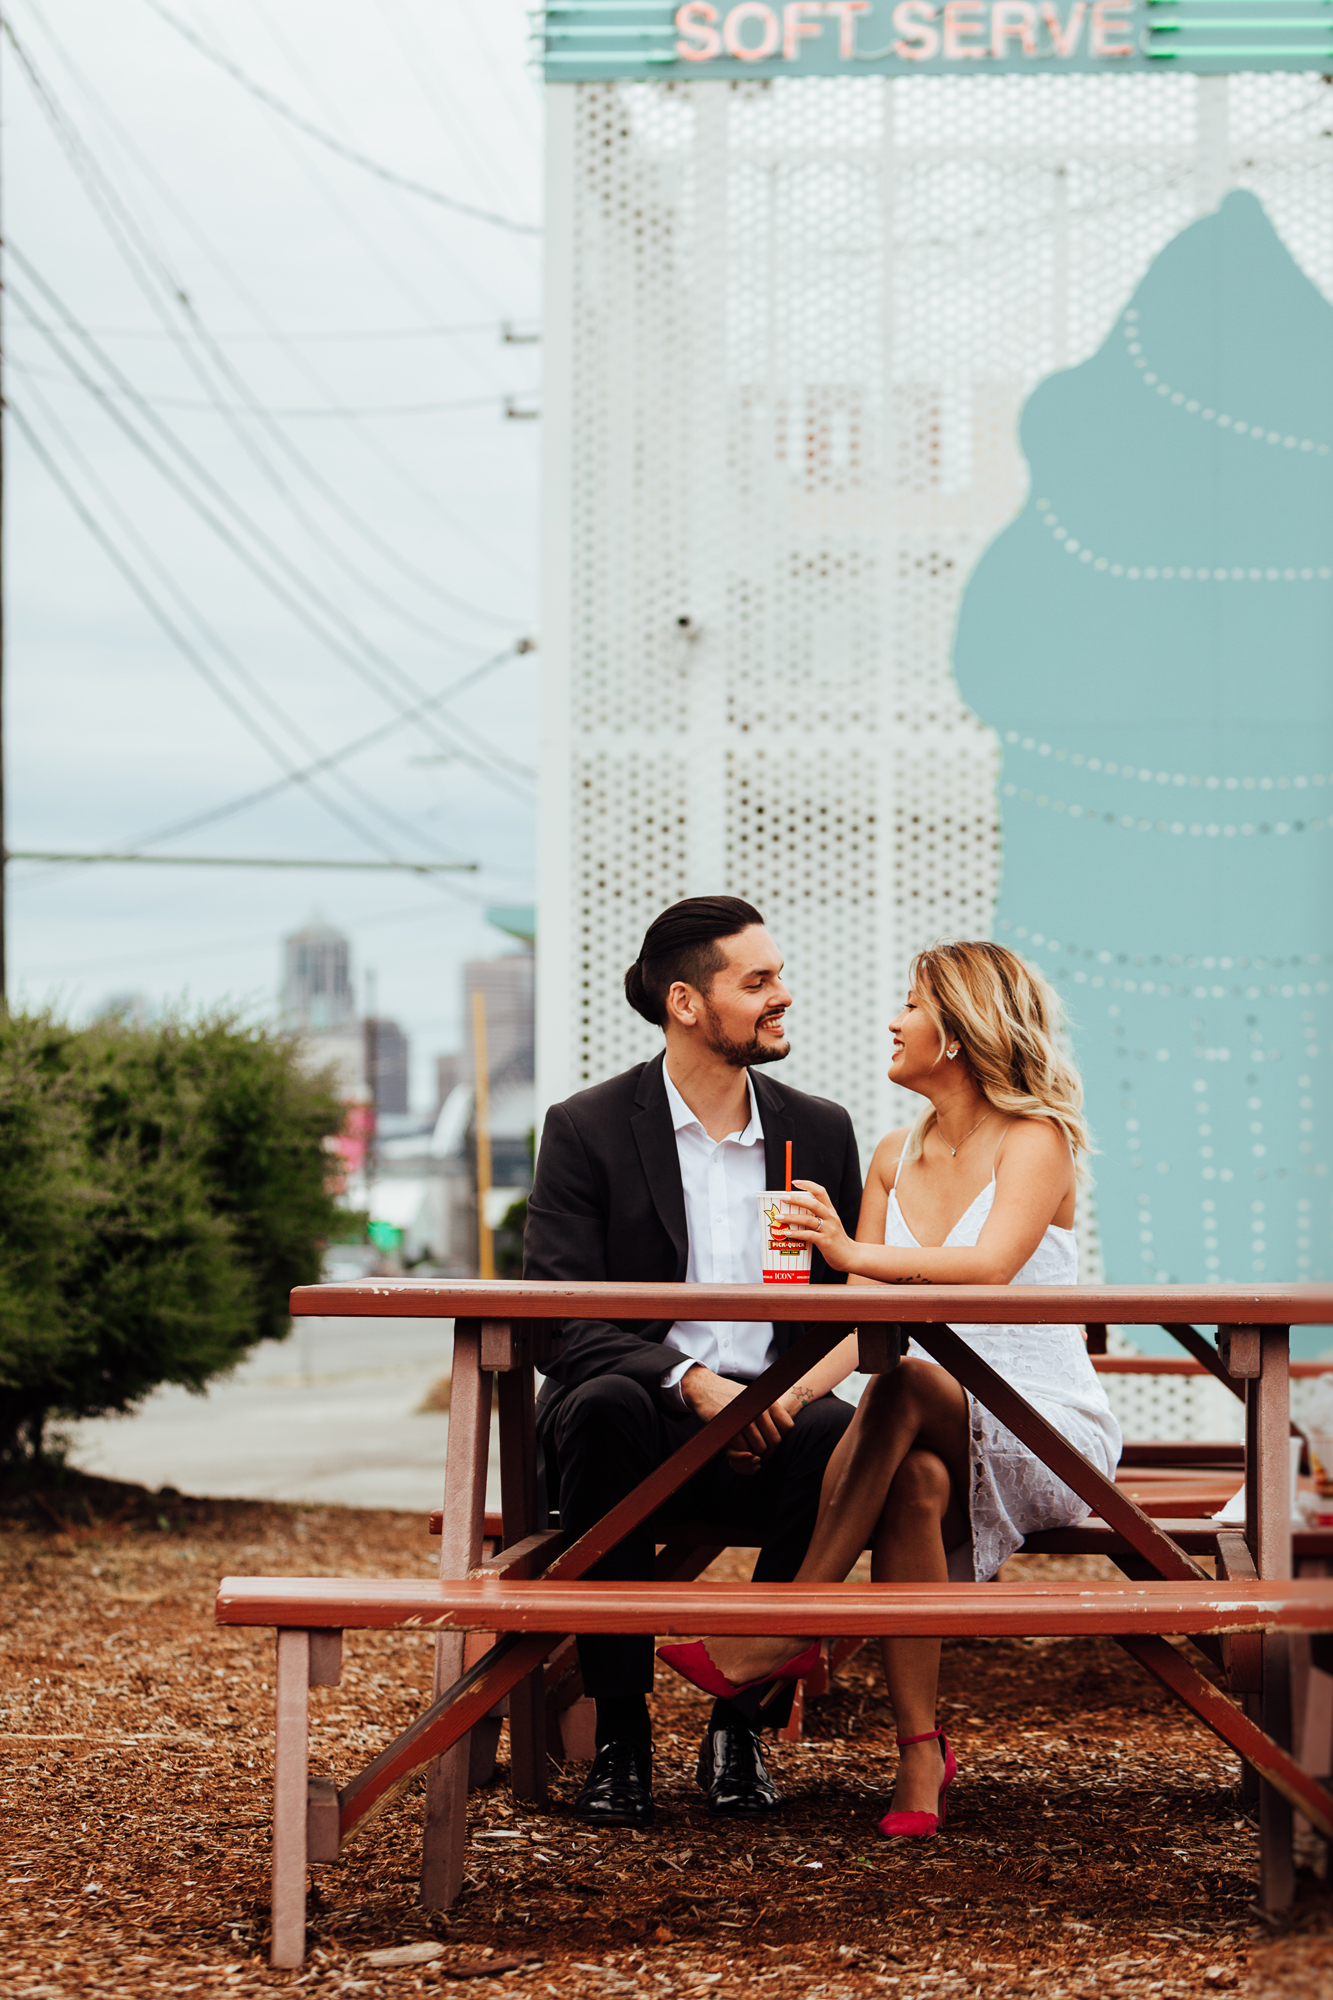 Seattle Rooftop Courthouse Wedding Photos by Krista Welch00021.jpg